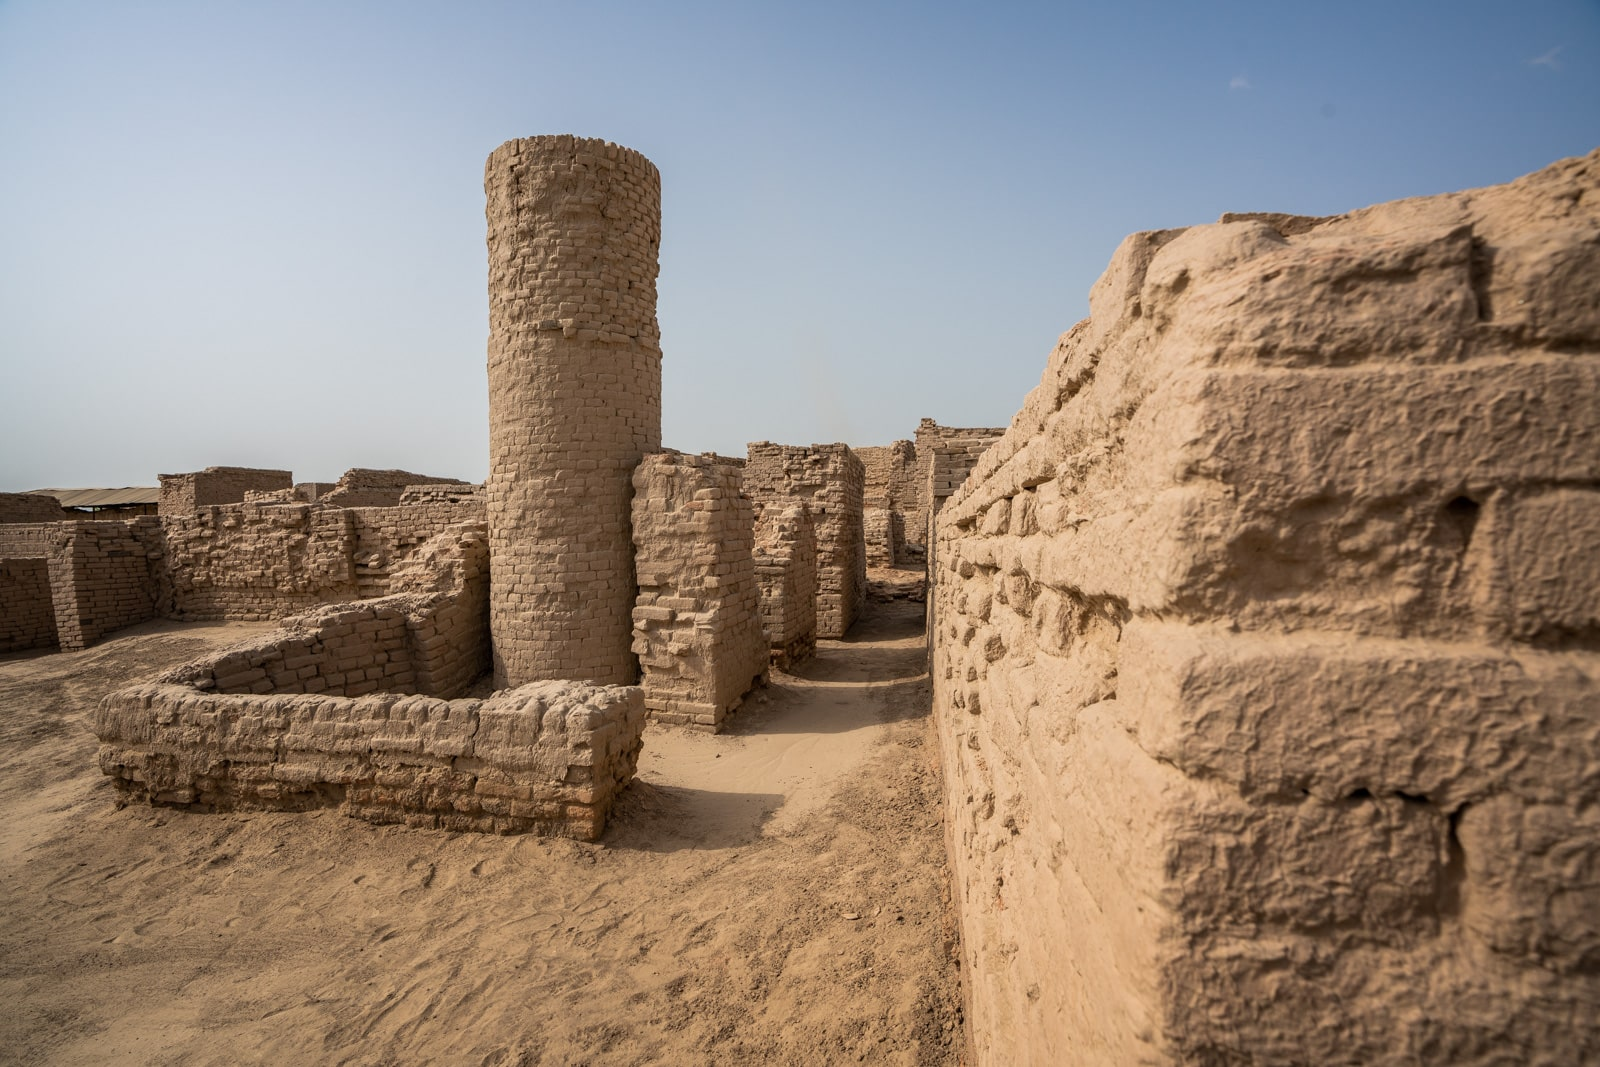 Sindh travel guide - Brick ruins at Moenjo-daro - Lost With Purpose travel blog